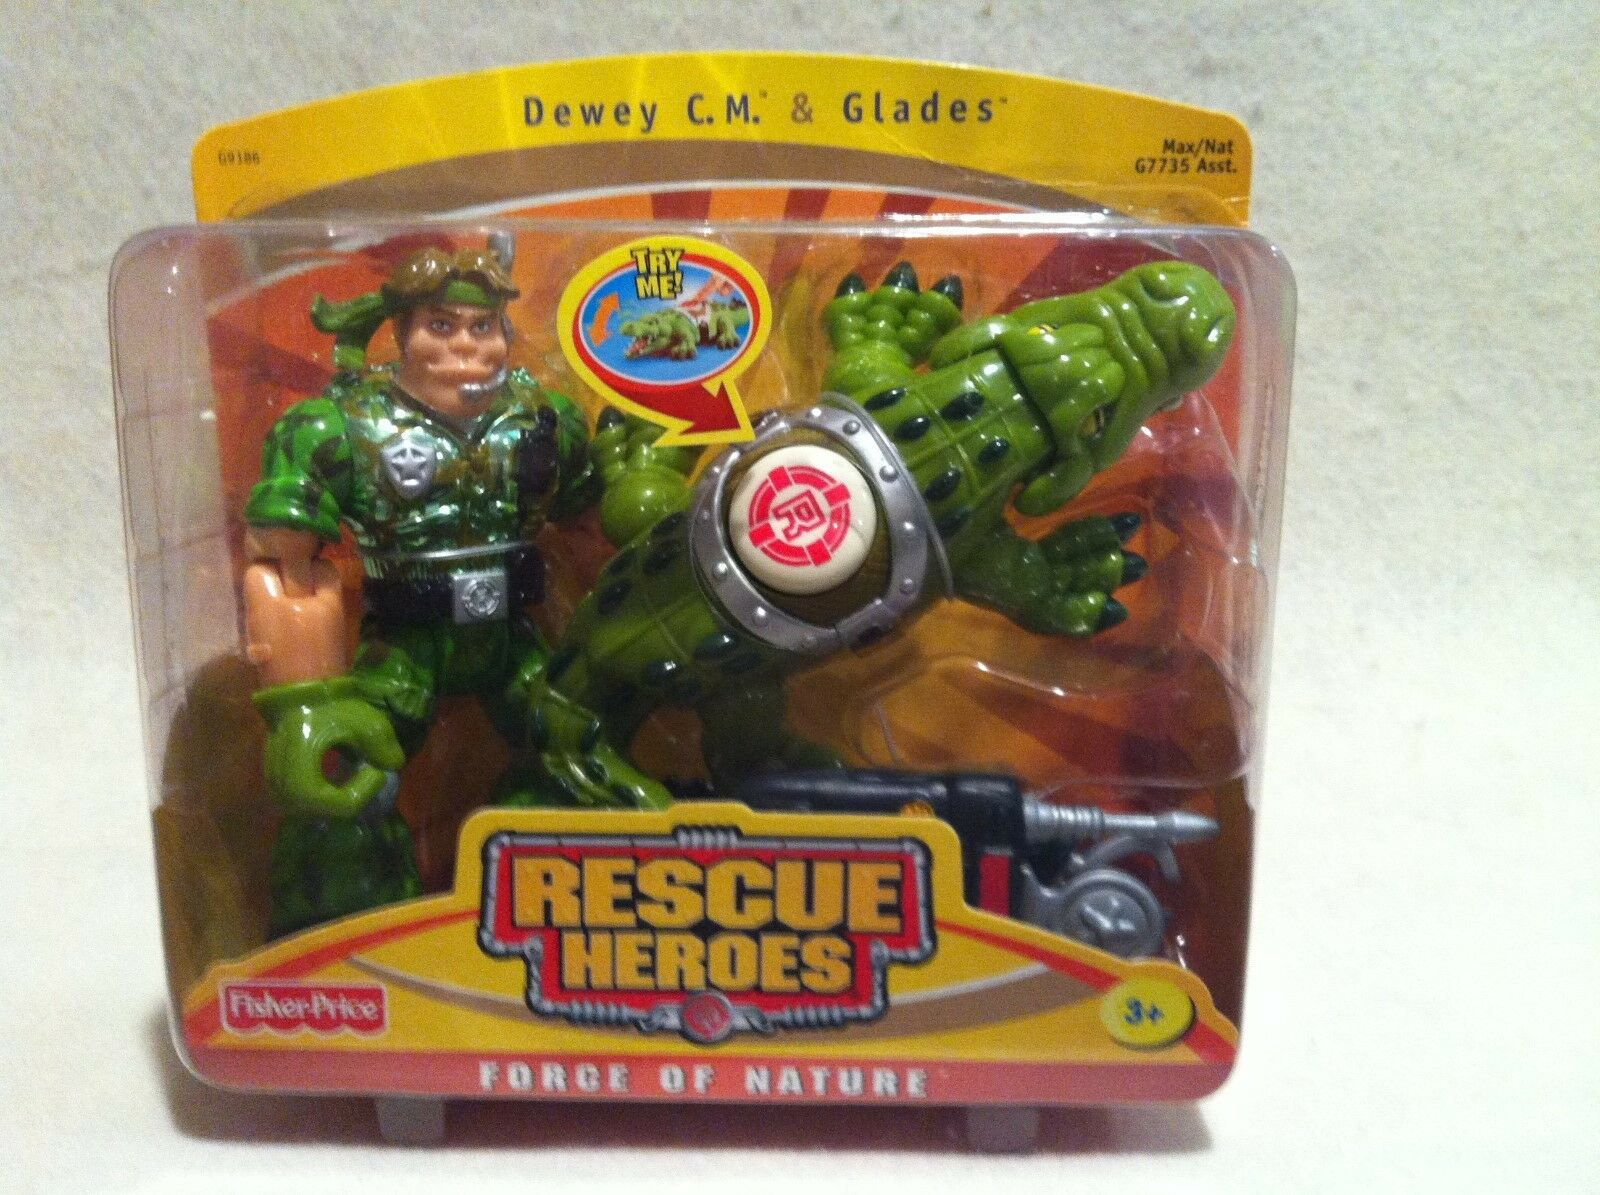 Rescue Rescue Rescue Heroes Force of  Nature  Dewey C.M. & Glades   FACTORY SEALED  8ee25d